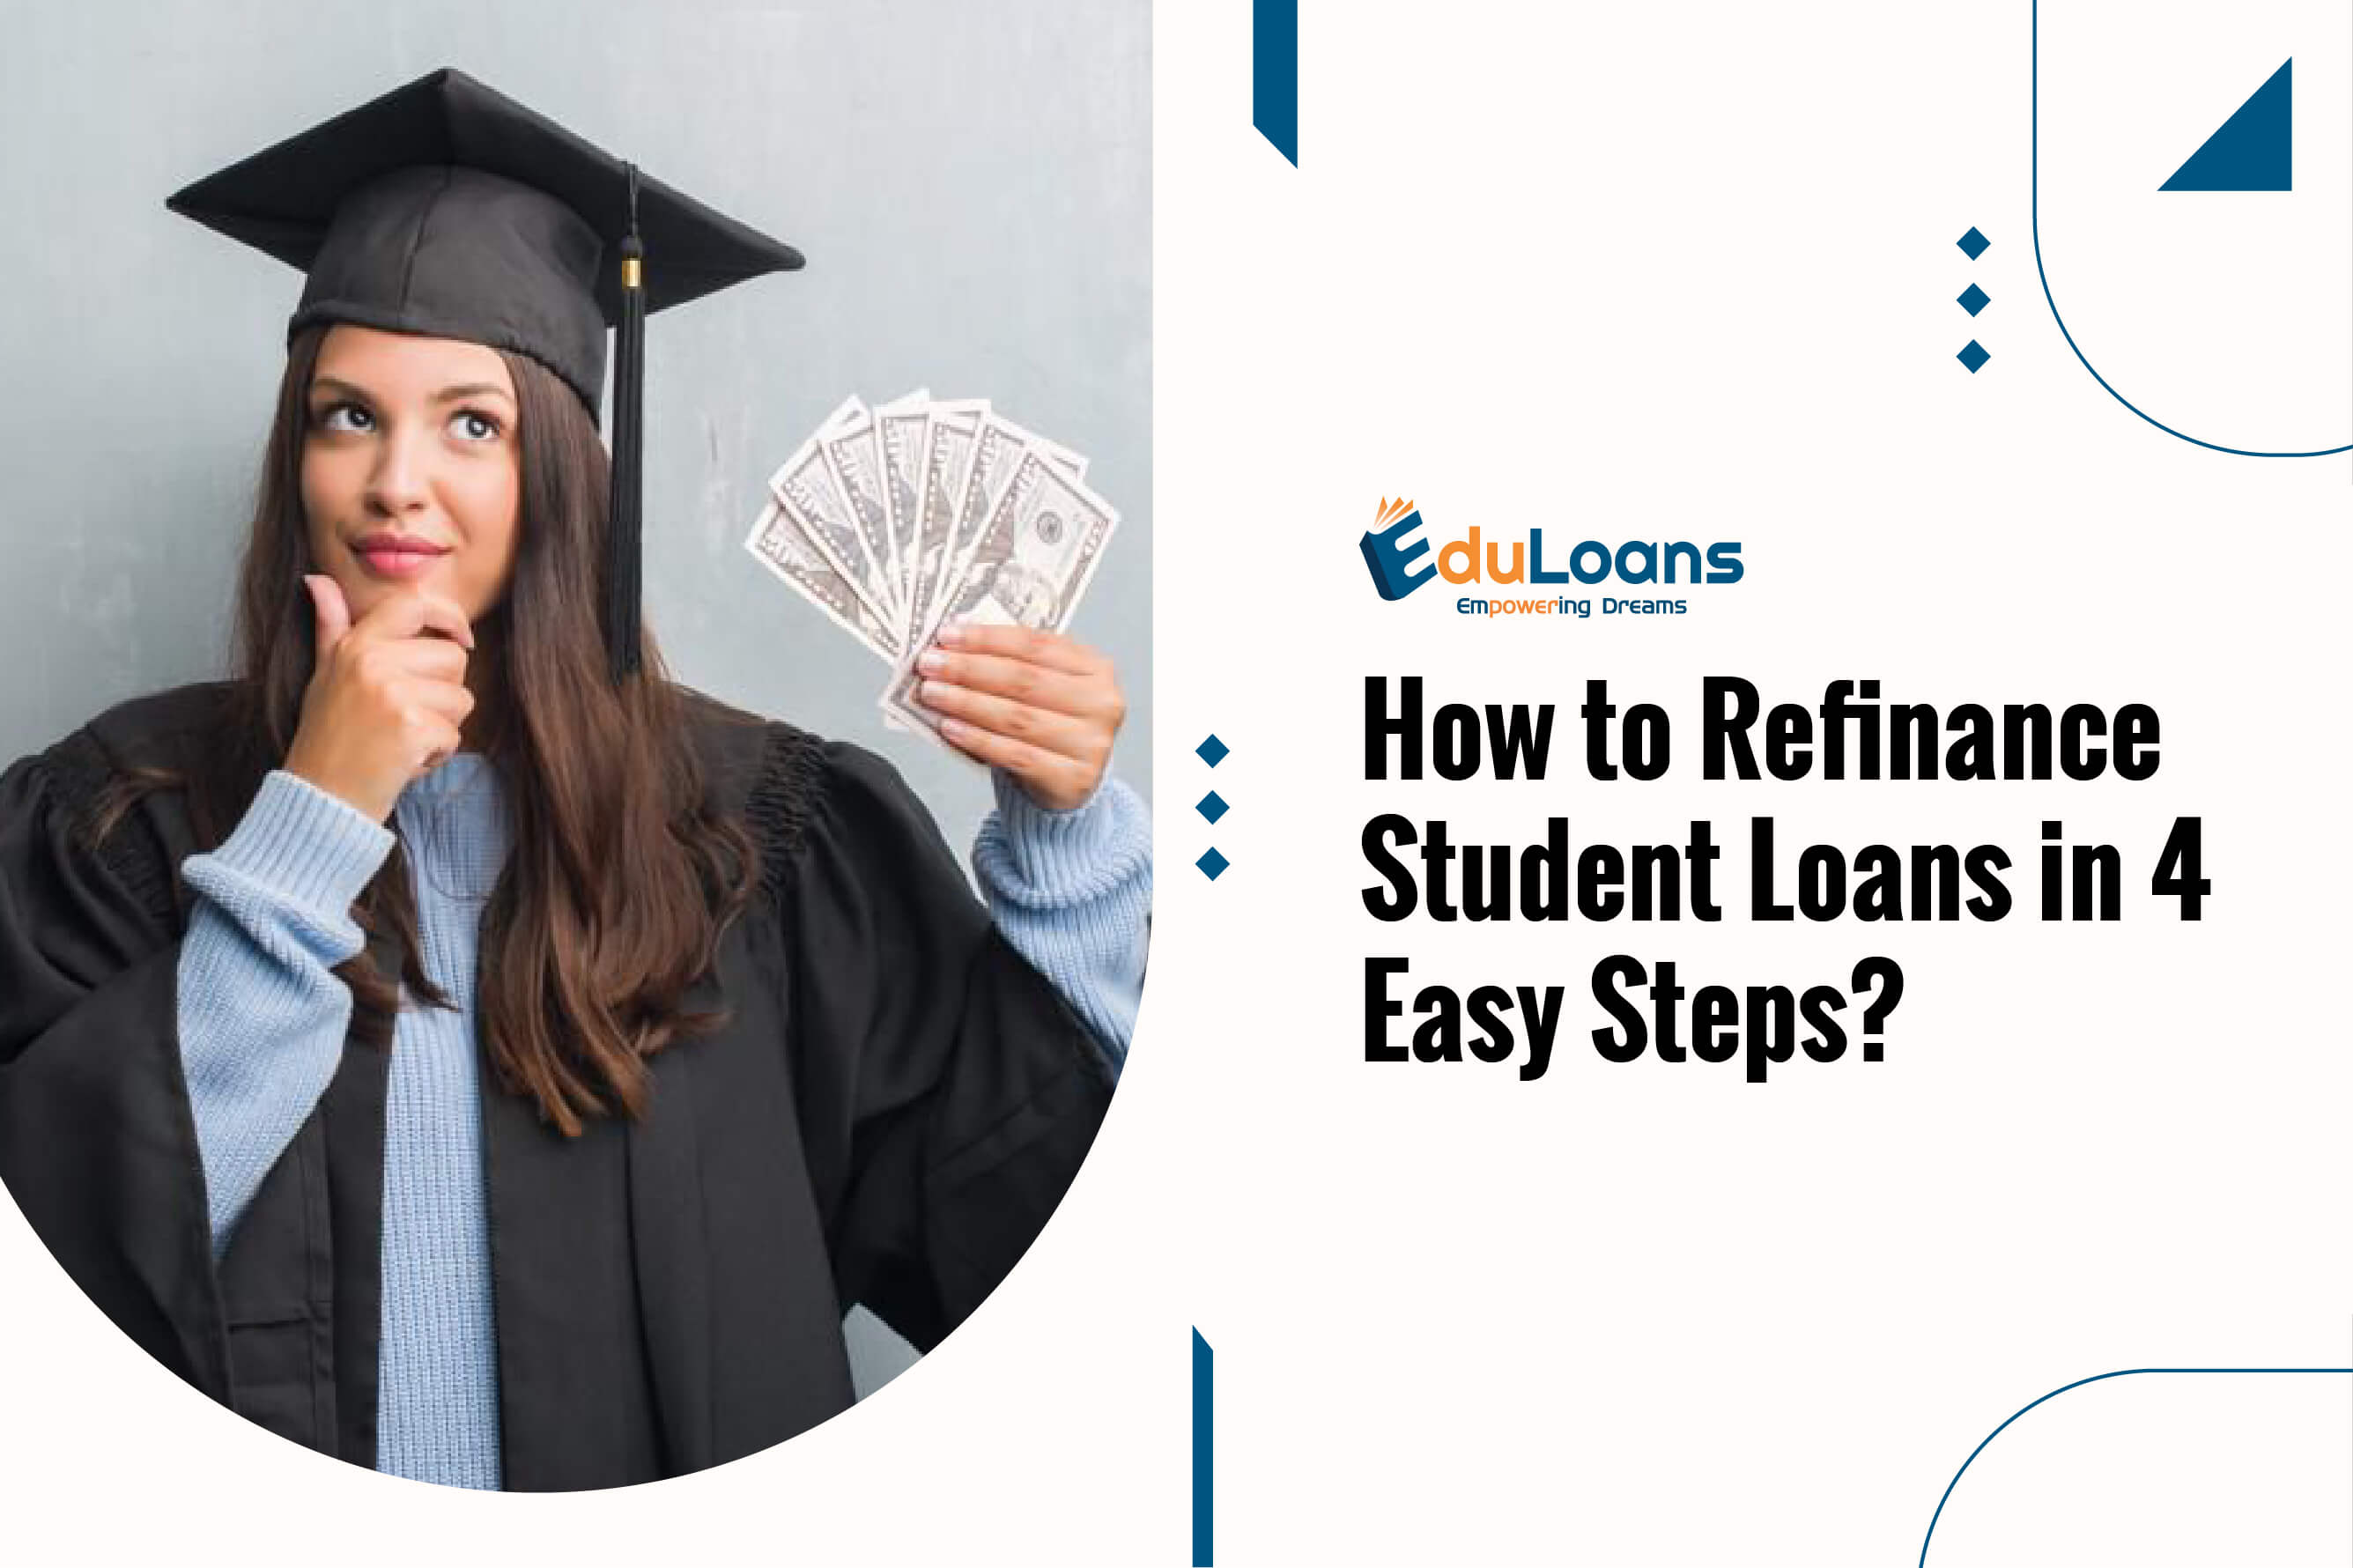 How to Refinance Student Loans in 4 Easy Steps?